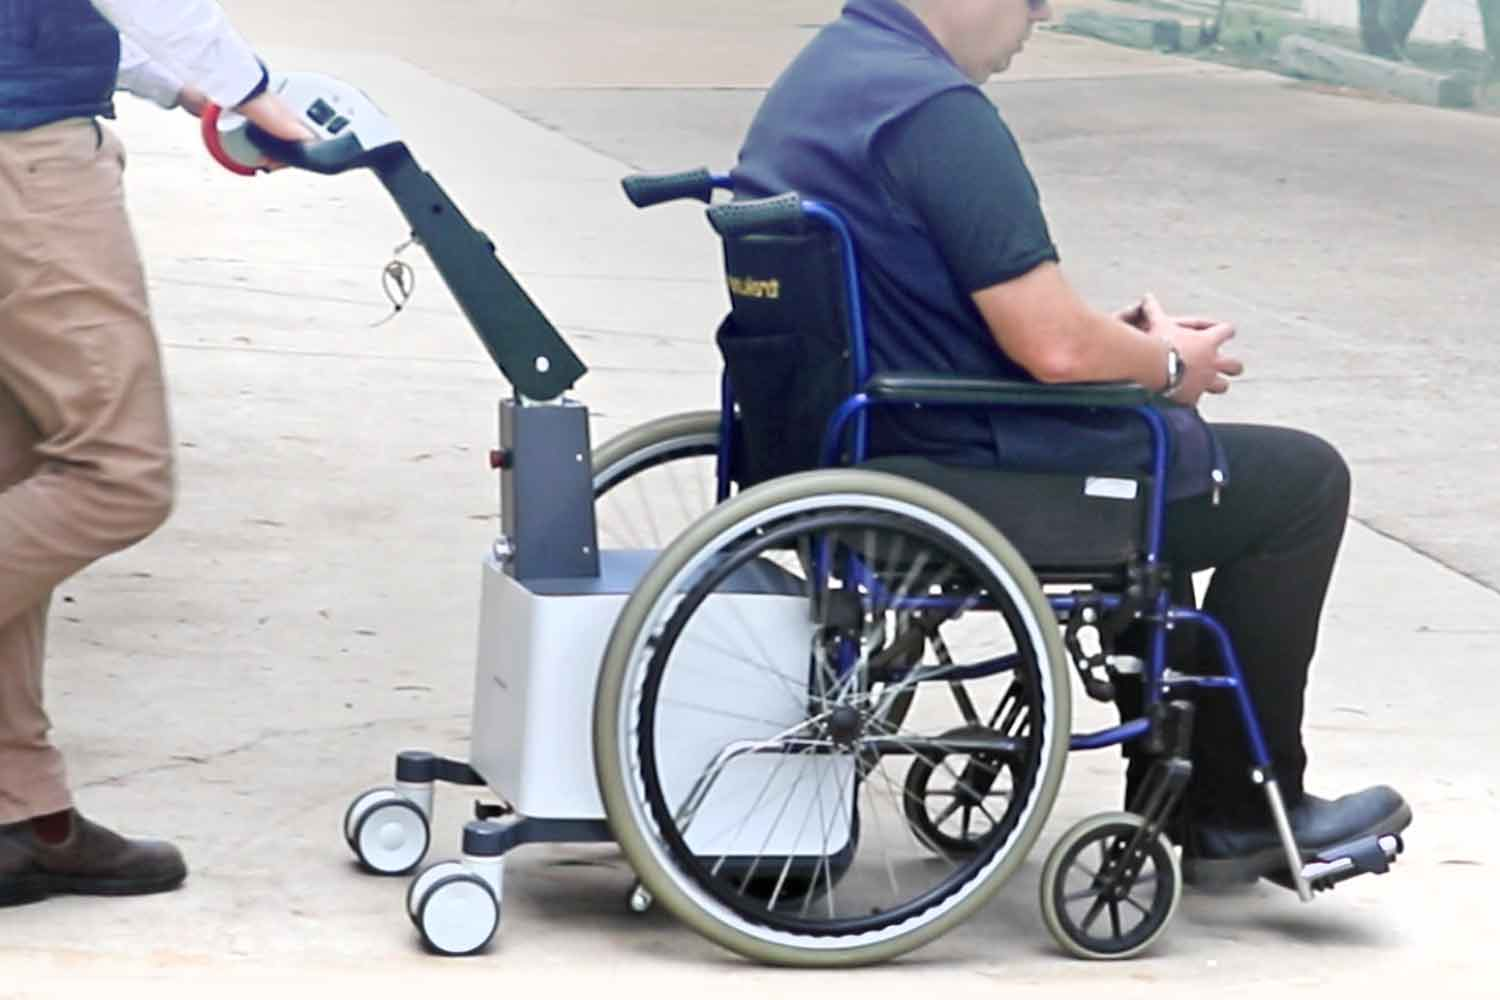 The powered wheelchair mover in action